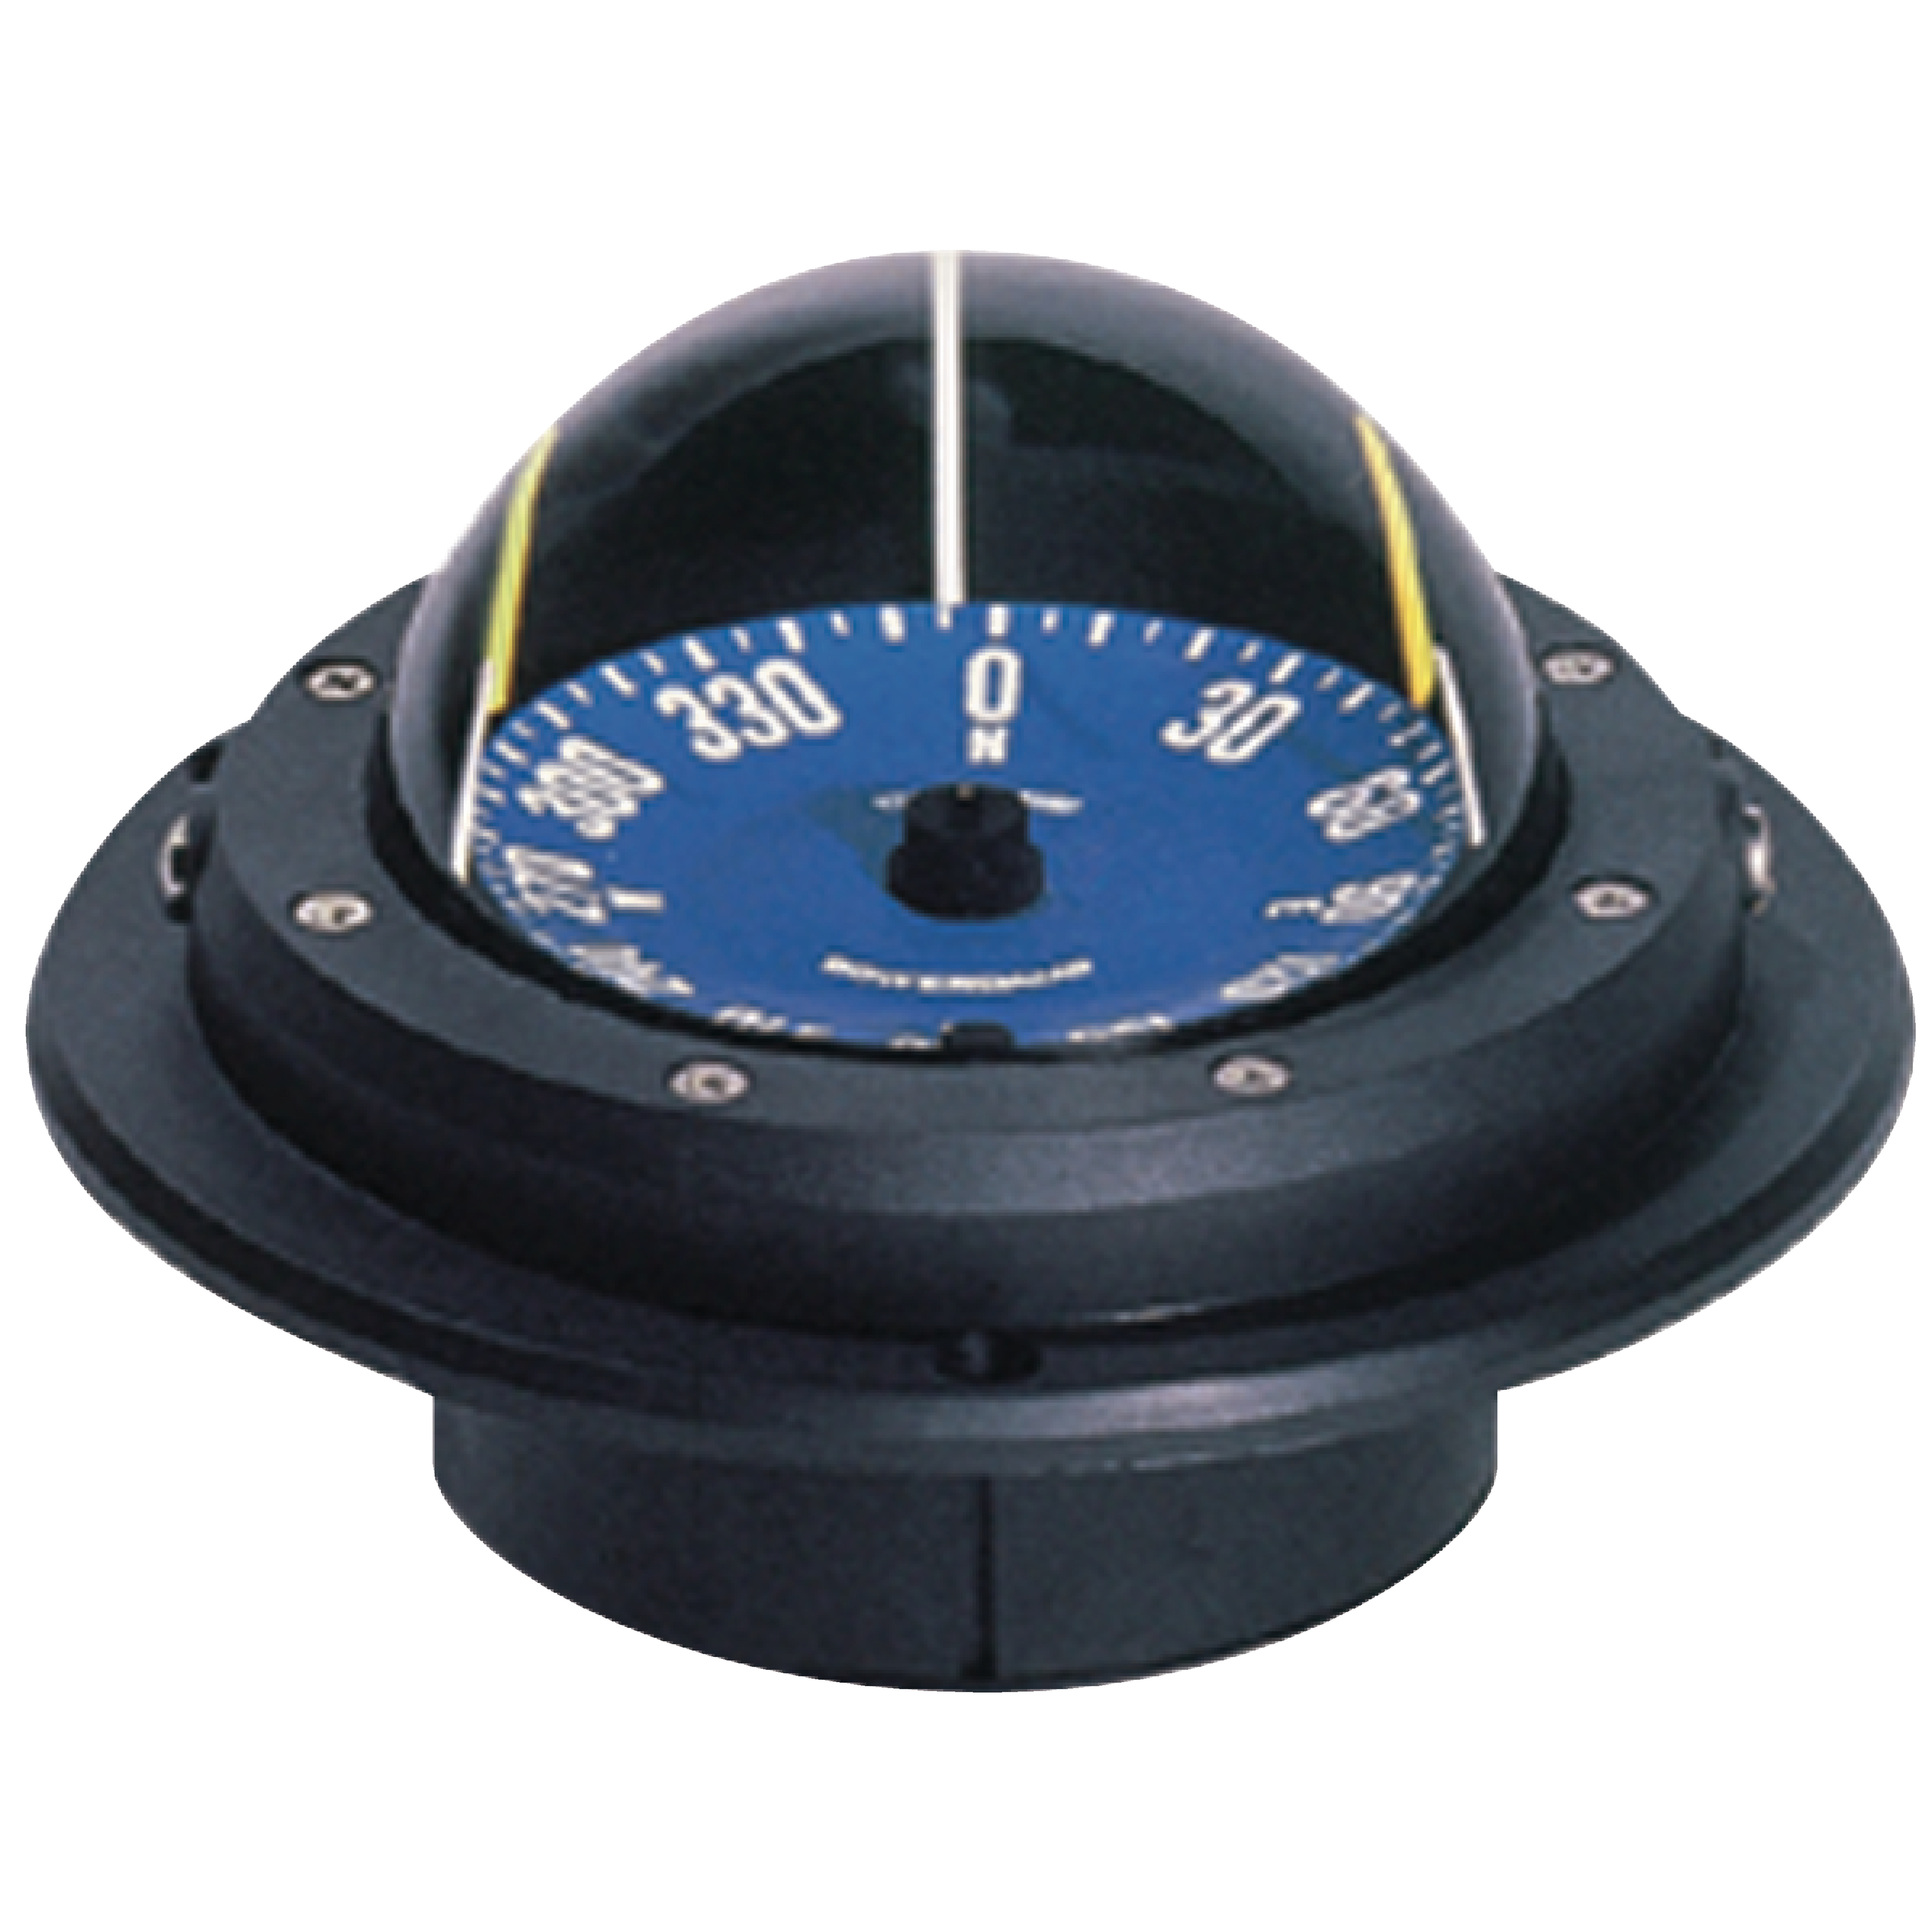 """Ritchie RU-90 Voyager Racing Boat Compass with No Light & Flush 4-1 8"""" Hole Mount by E.S. Ritchie & Sons Inc."""